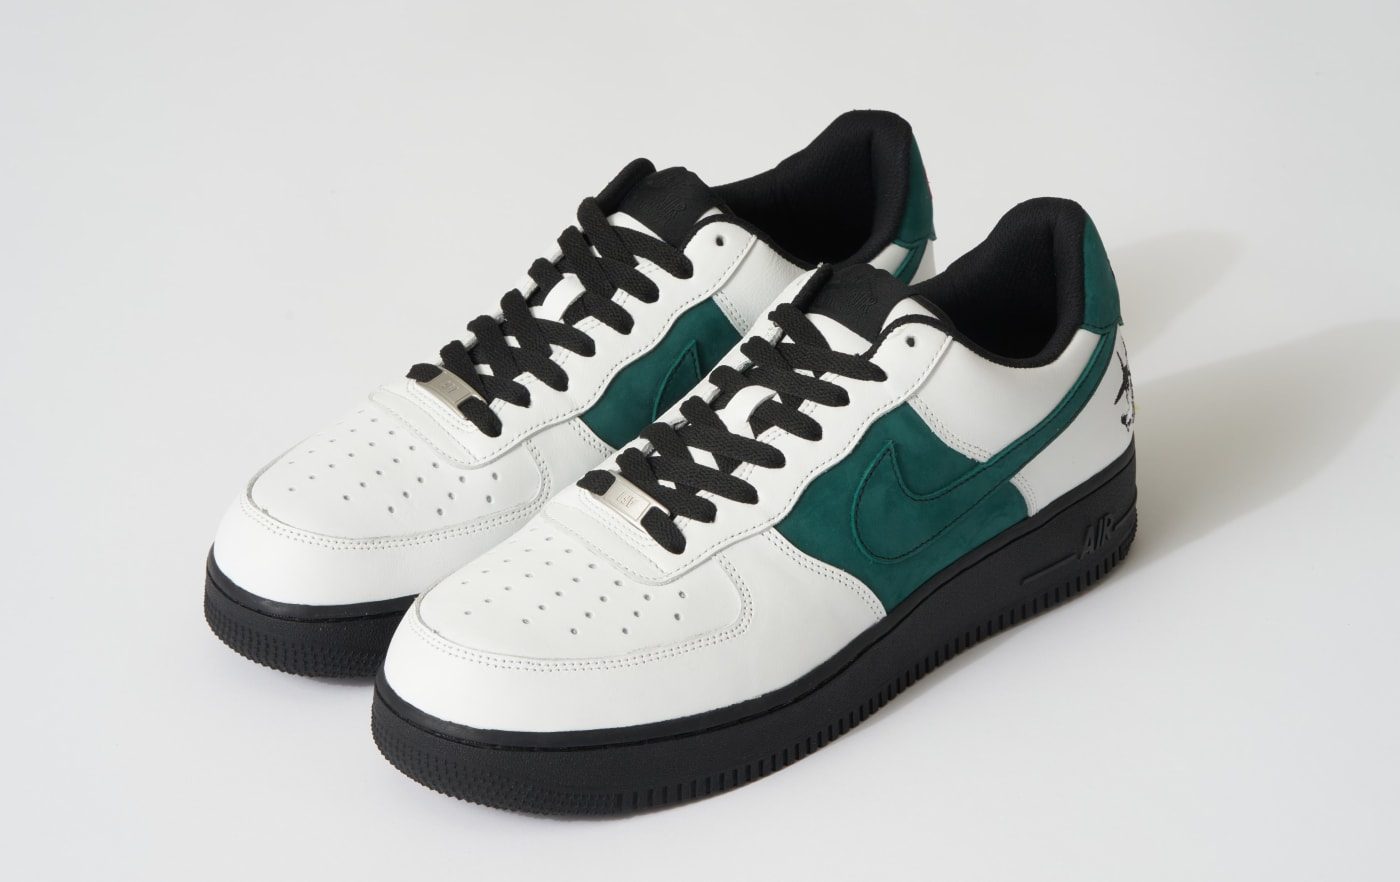 100 Wolves x Nike Air force 1 Low (Pair)